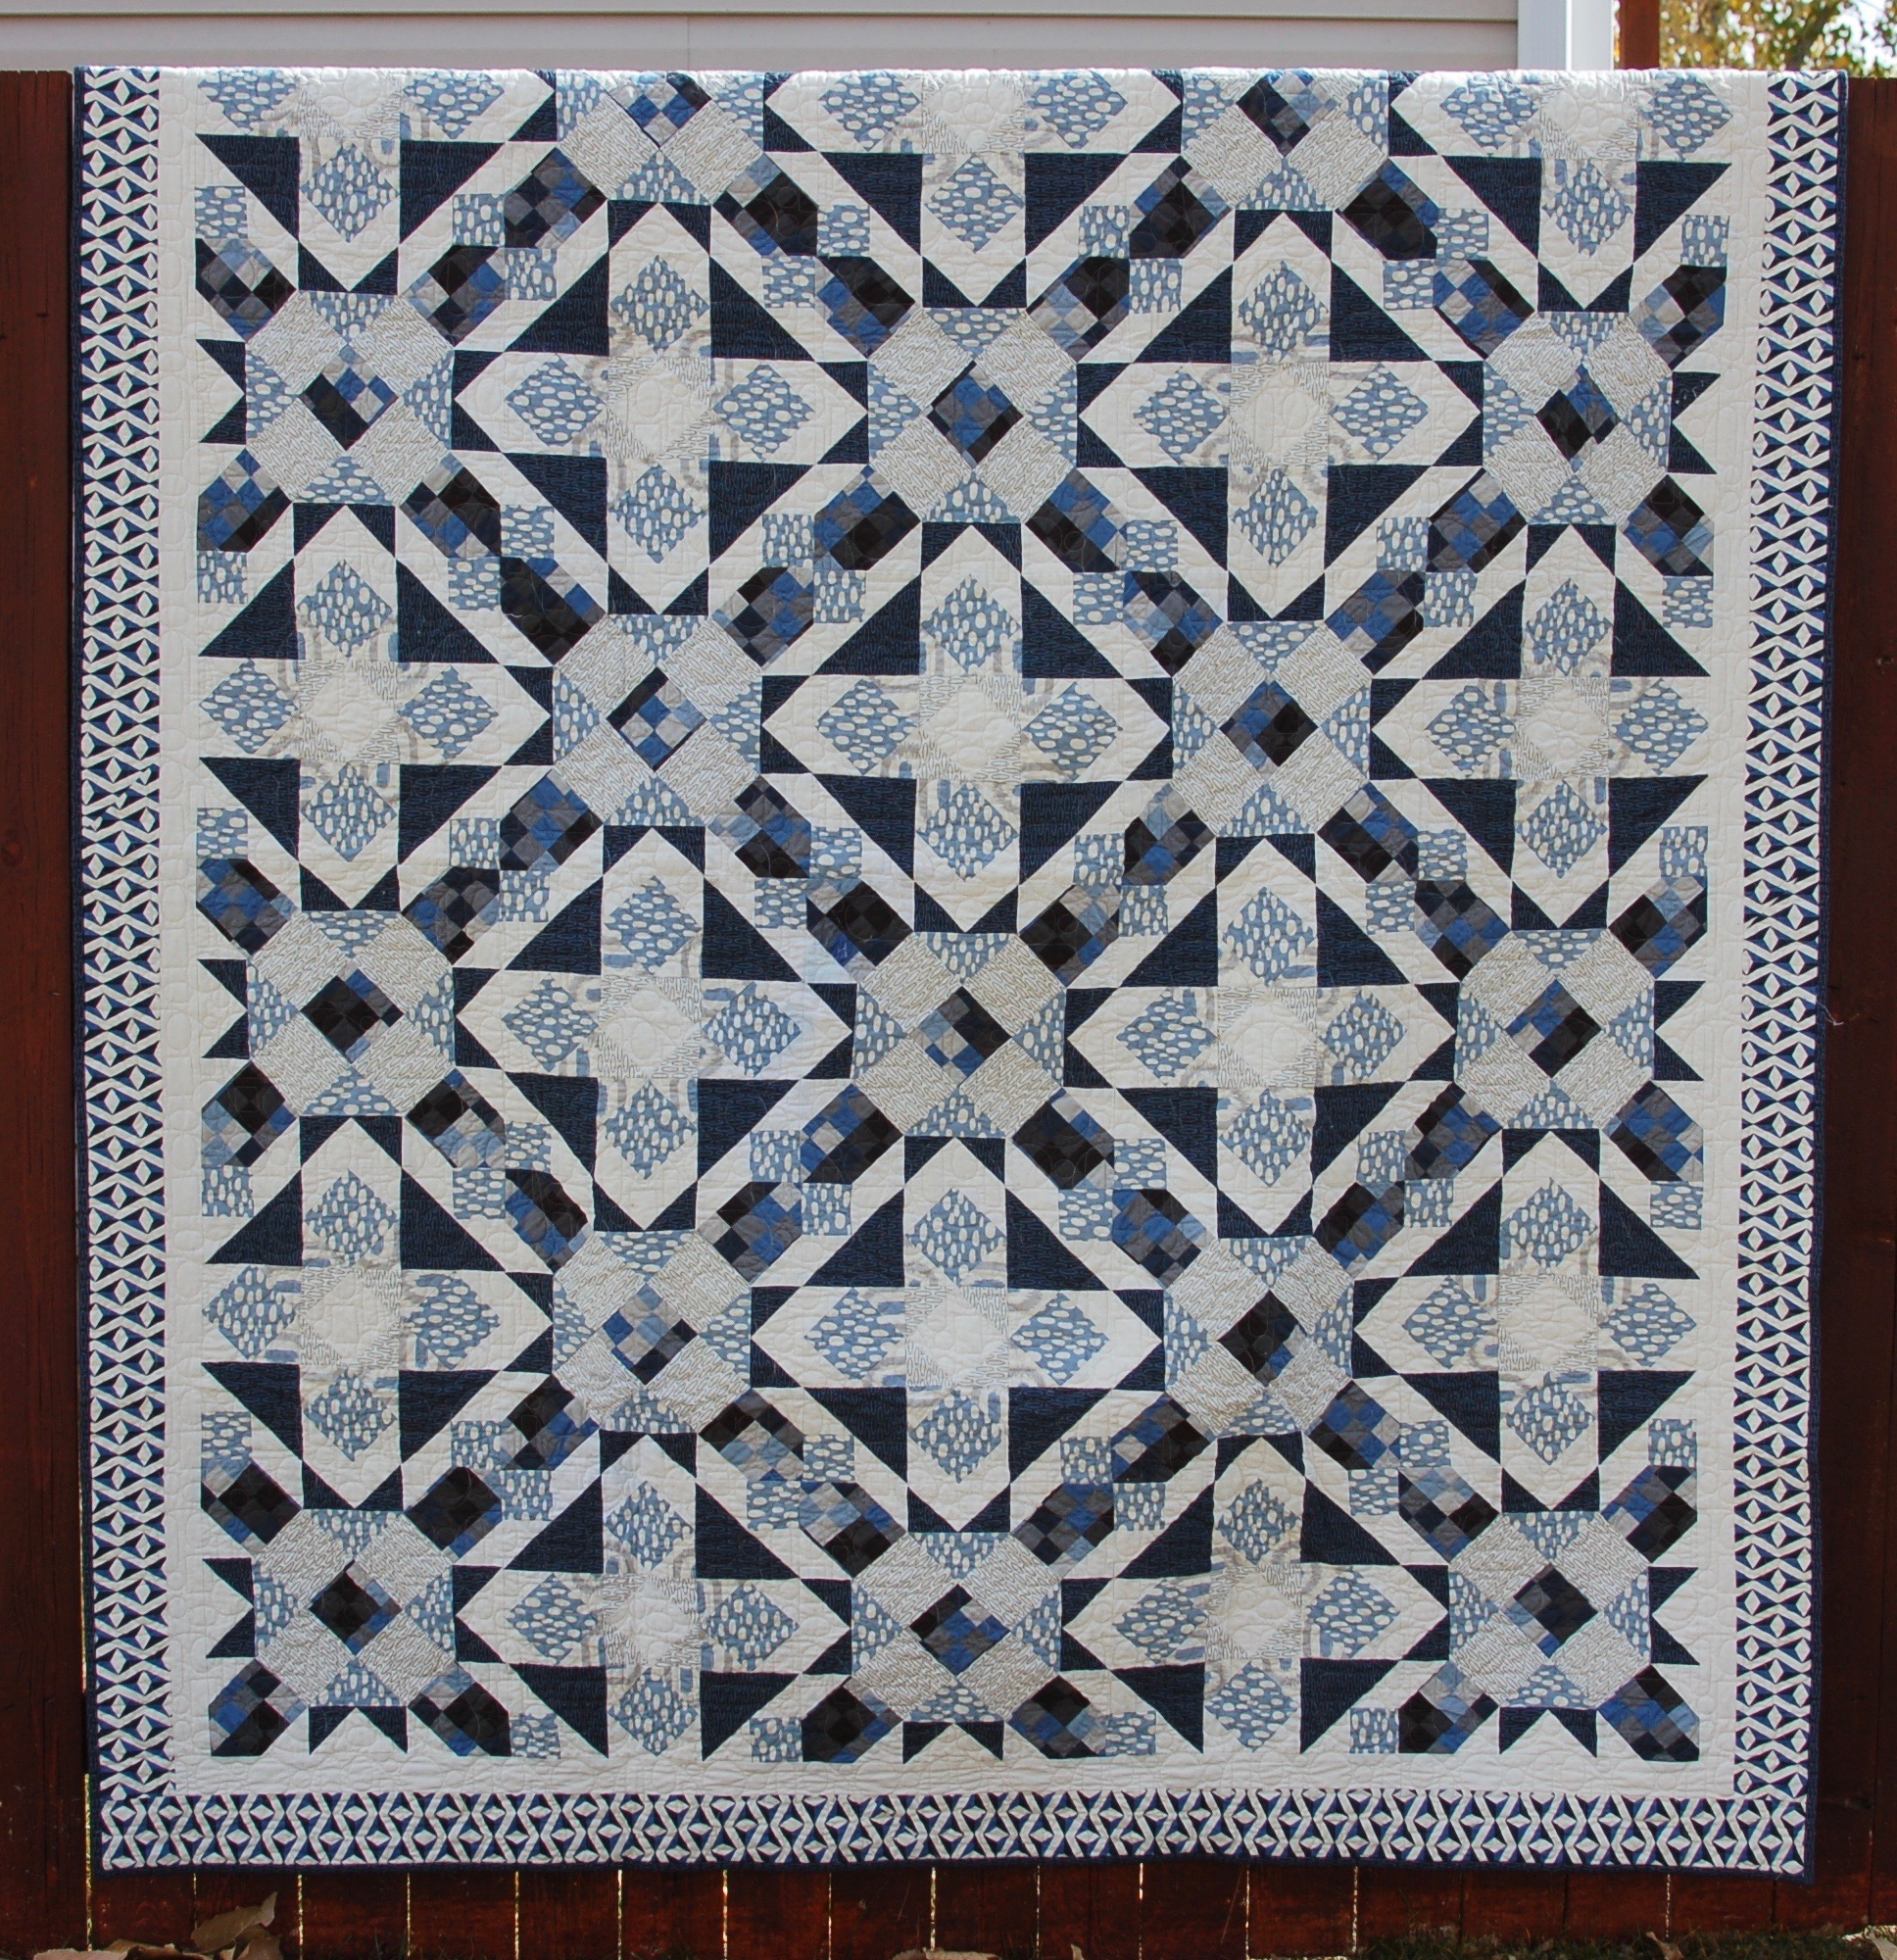 Tranquility - Indigo and soft blues featured in this Serenity quilt pattern by Amy Ellis #showmethemoda - AmysCreativeSide.com